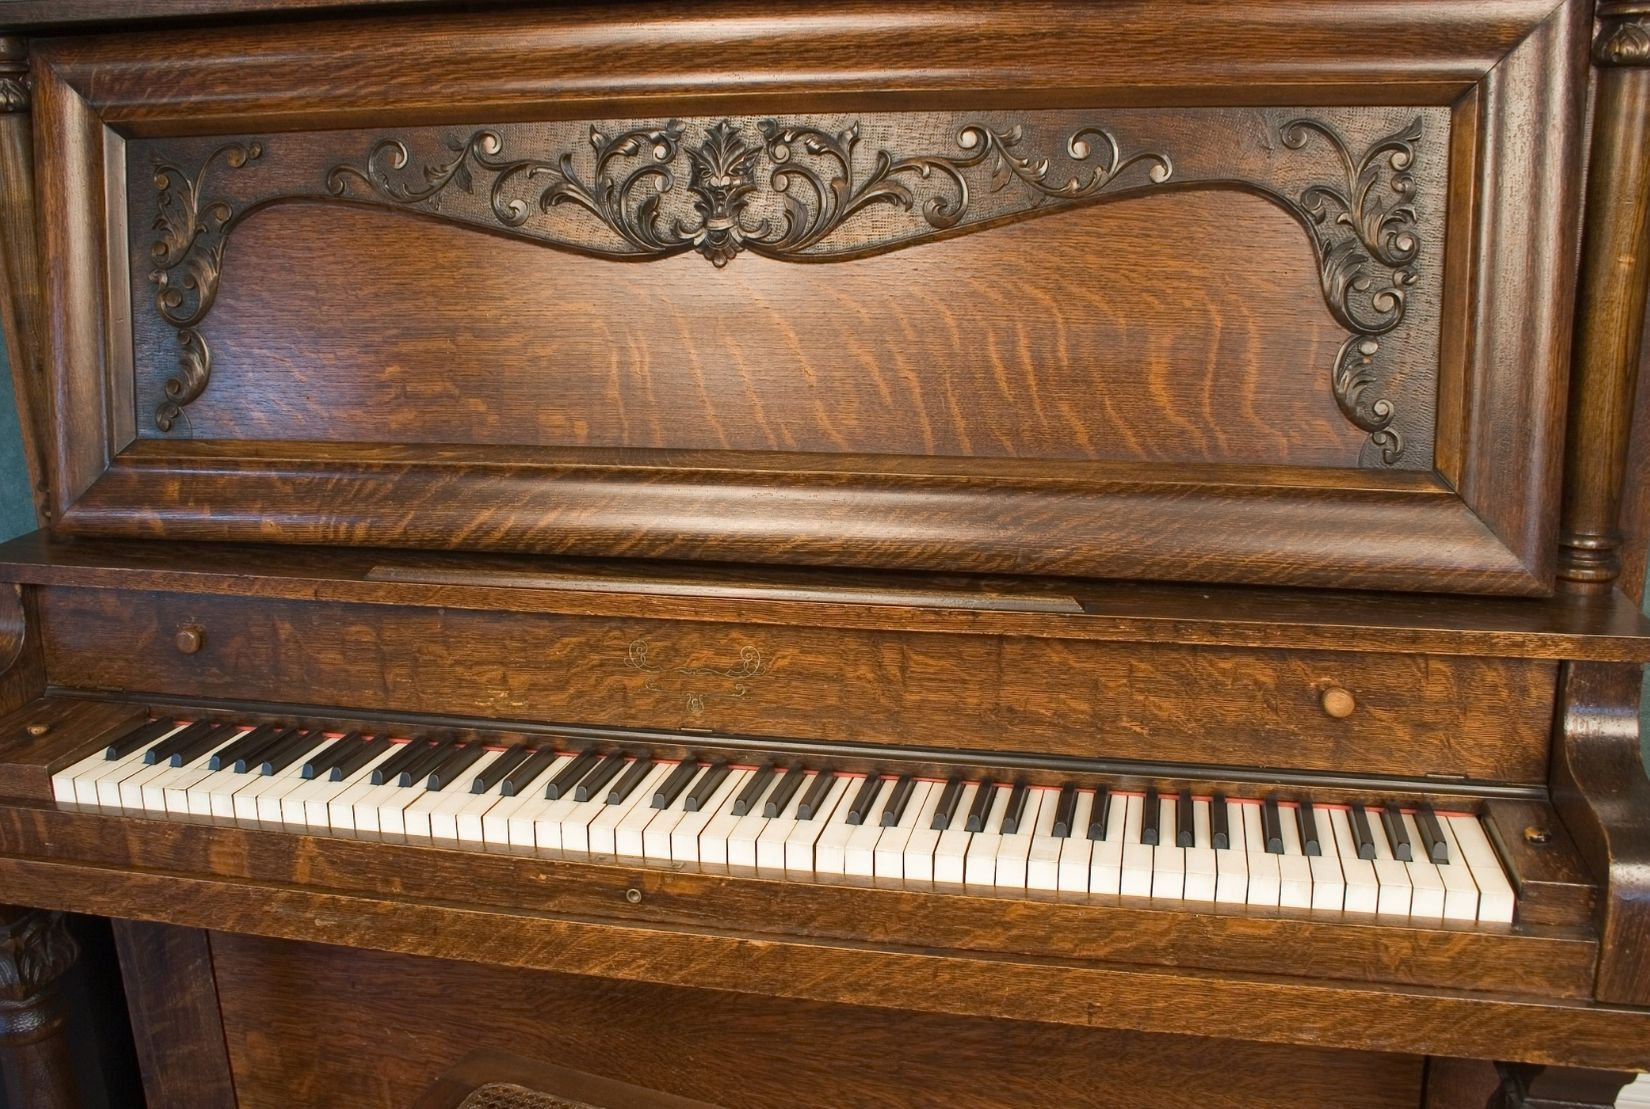 Antique Pianos We Don't Buy